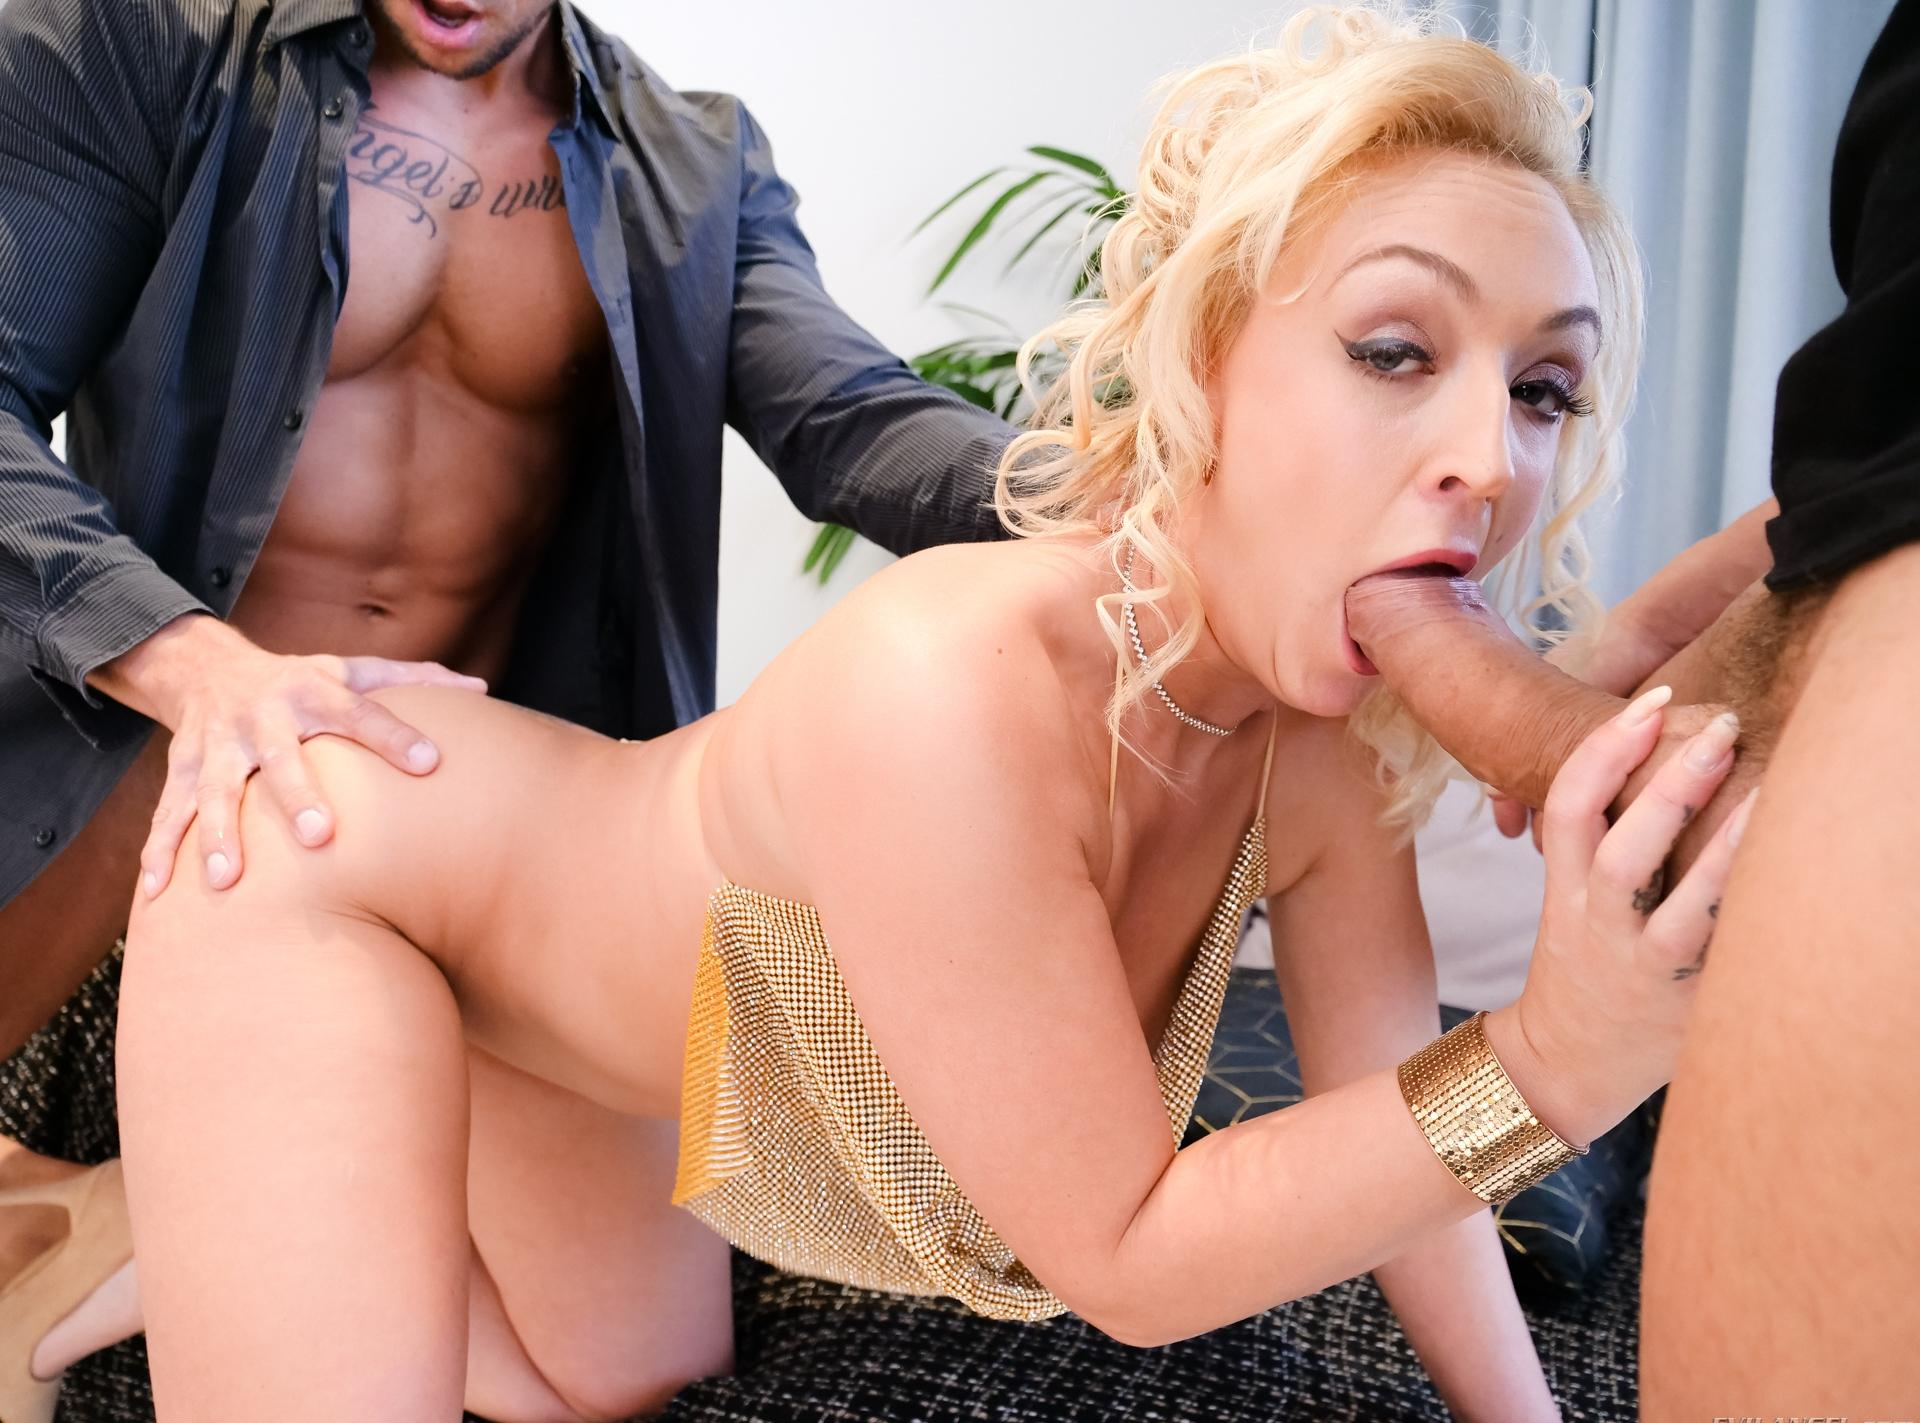 pretty blonde Amber Deen gets double trouble (penetration inside ass and vagina) picture 10